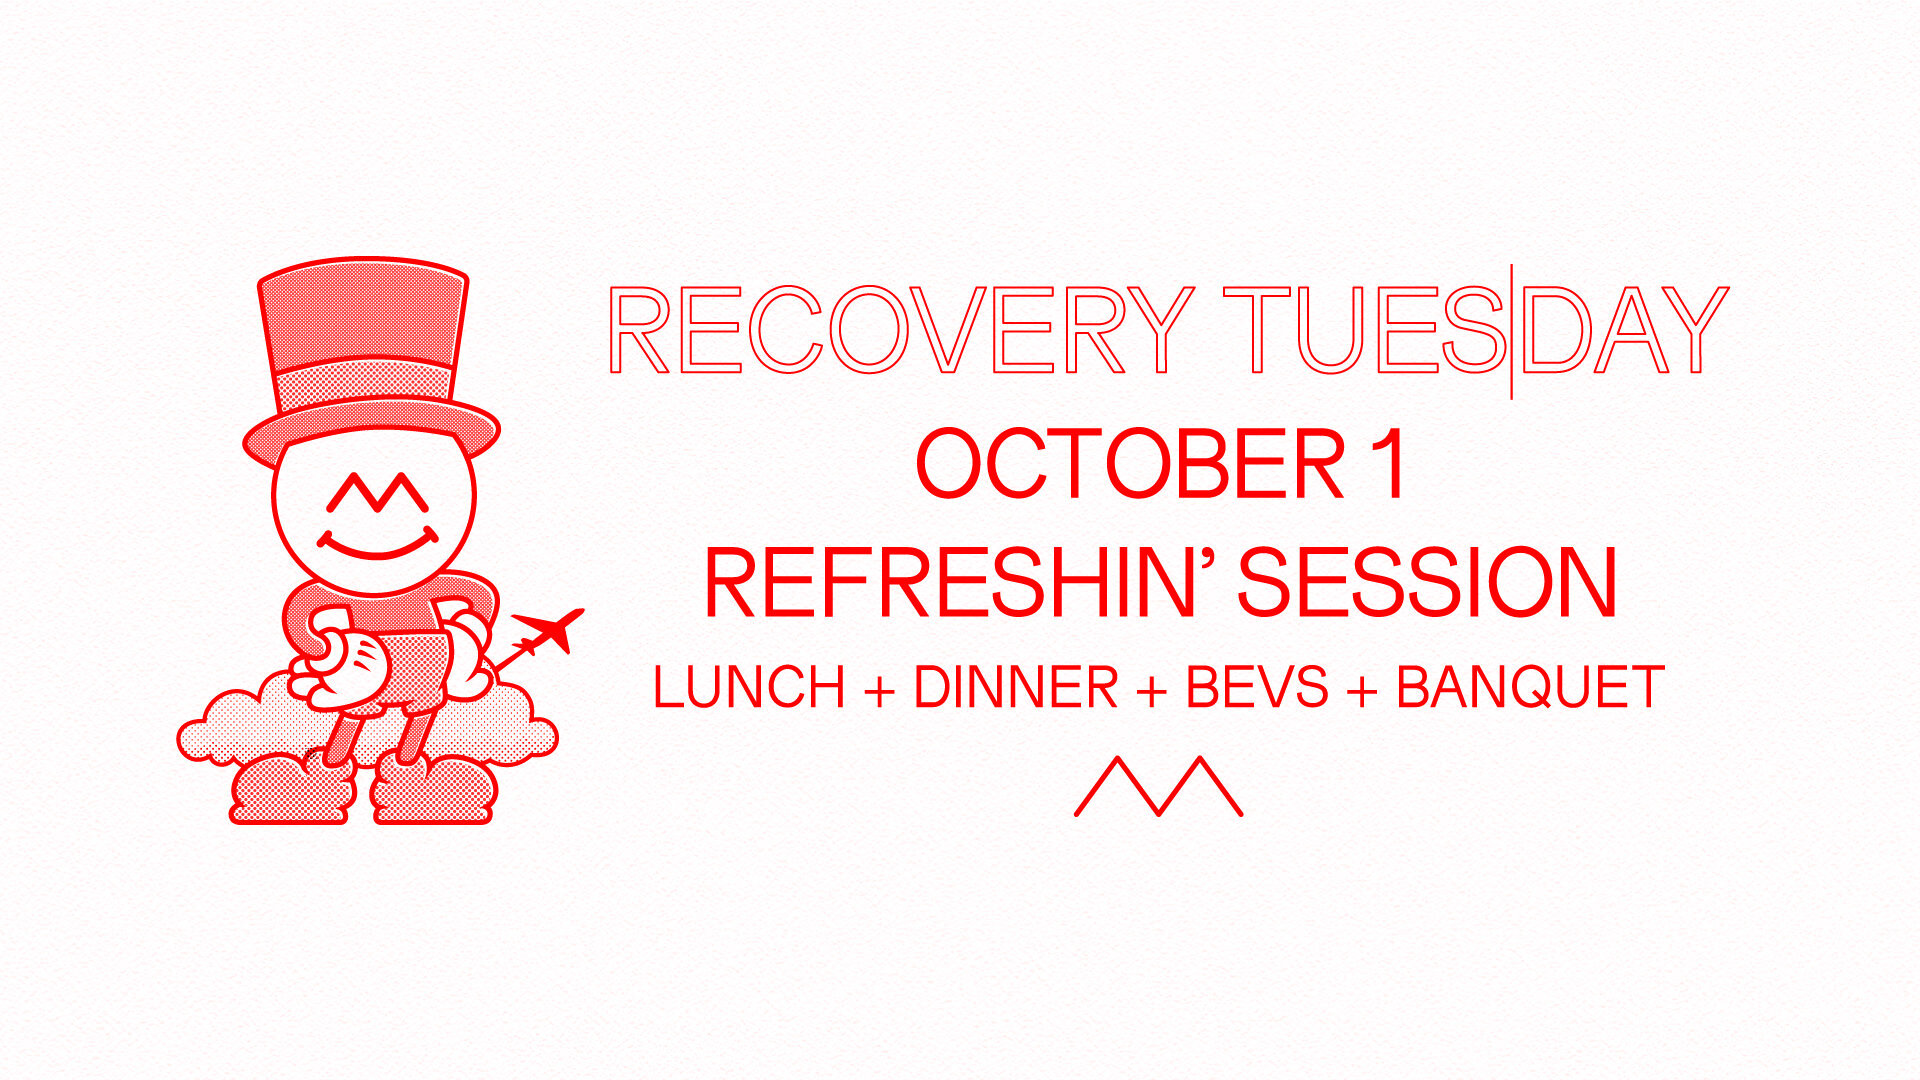 LV_RecoveryTuesday(EVENT-STATIC).jpg